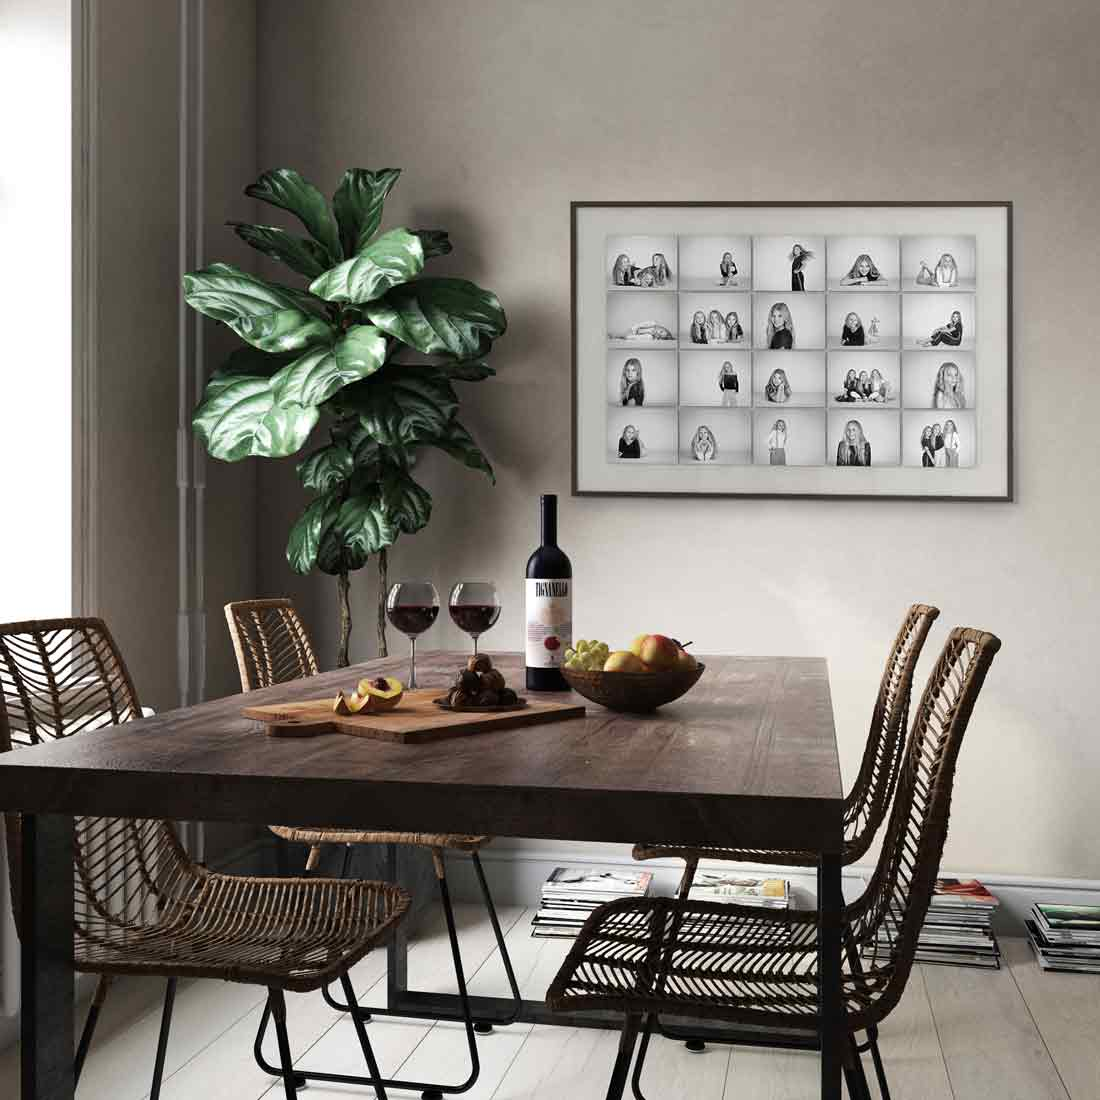 A twenty image montage contact sheet in your dining area